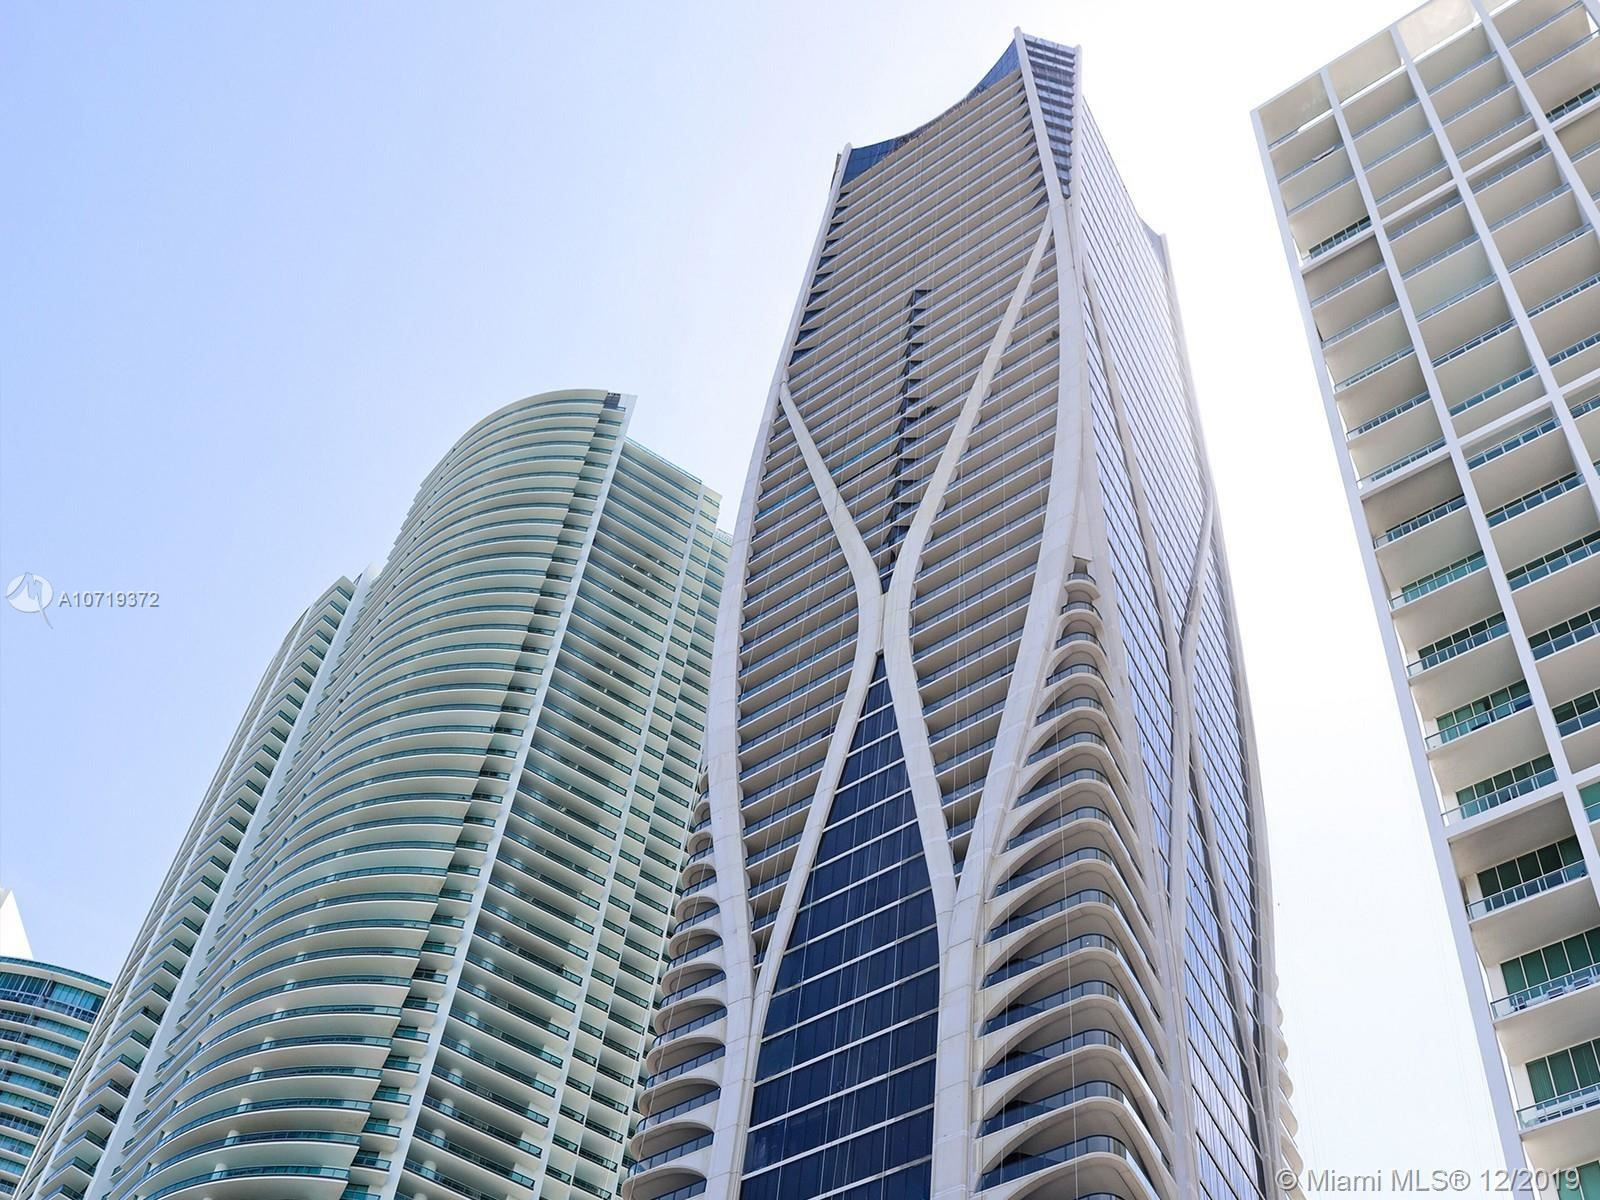 Photo 1 of Listing MLS a10719372 in 1000 Biscayne Blvd #5901 Miami FL 33132